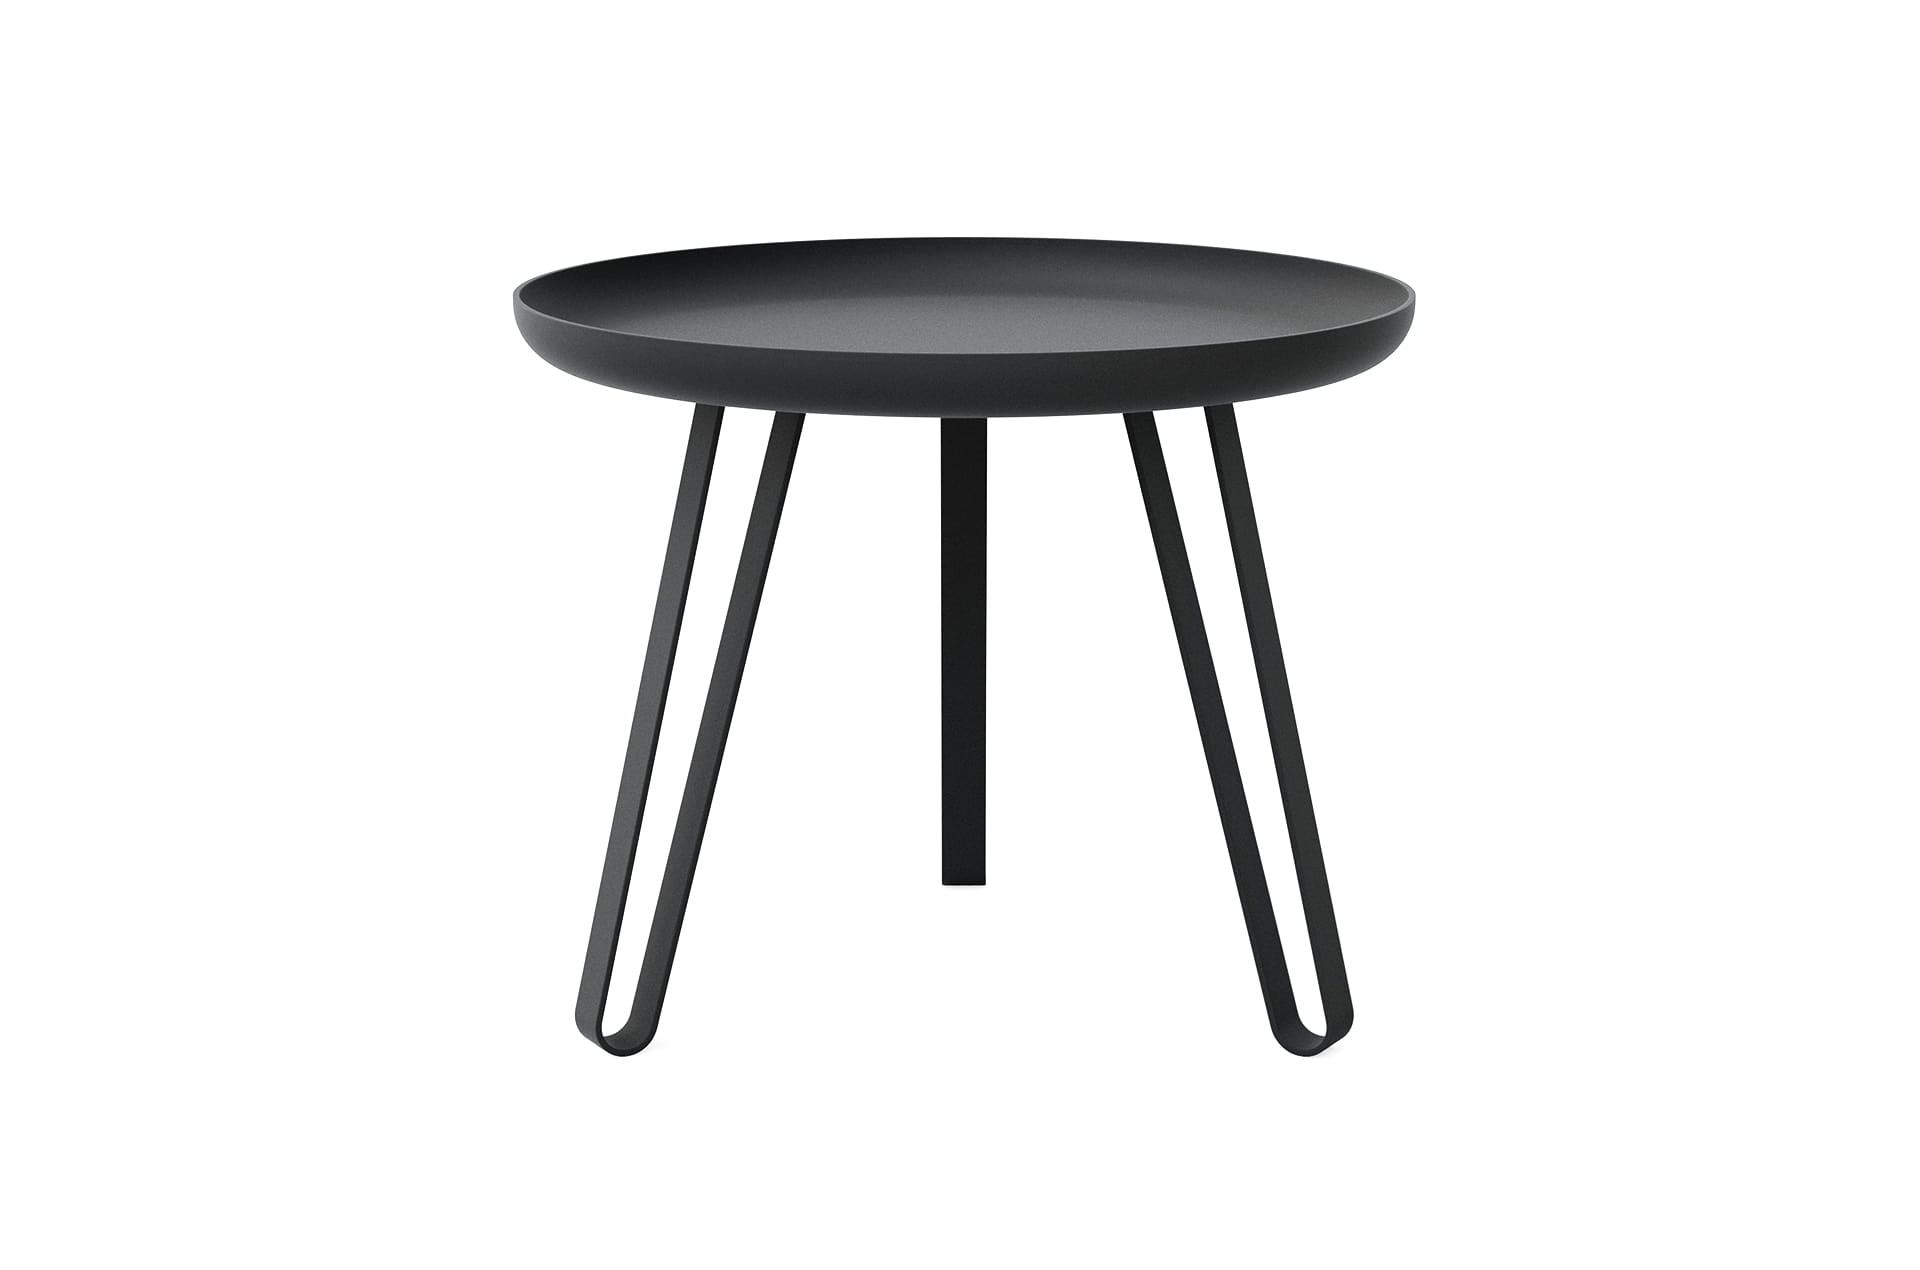 Table basse acier noir 54cm, Carosello by Slawinski-PARIDEO design durable